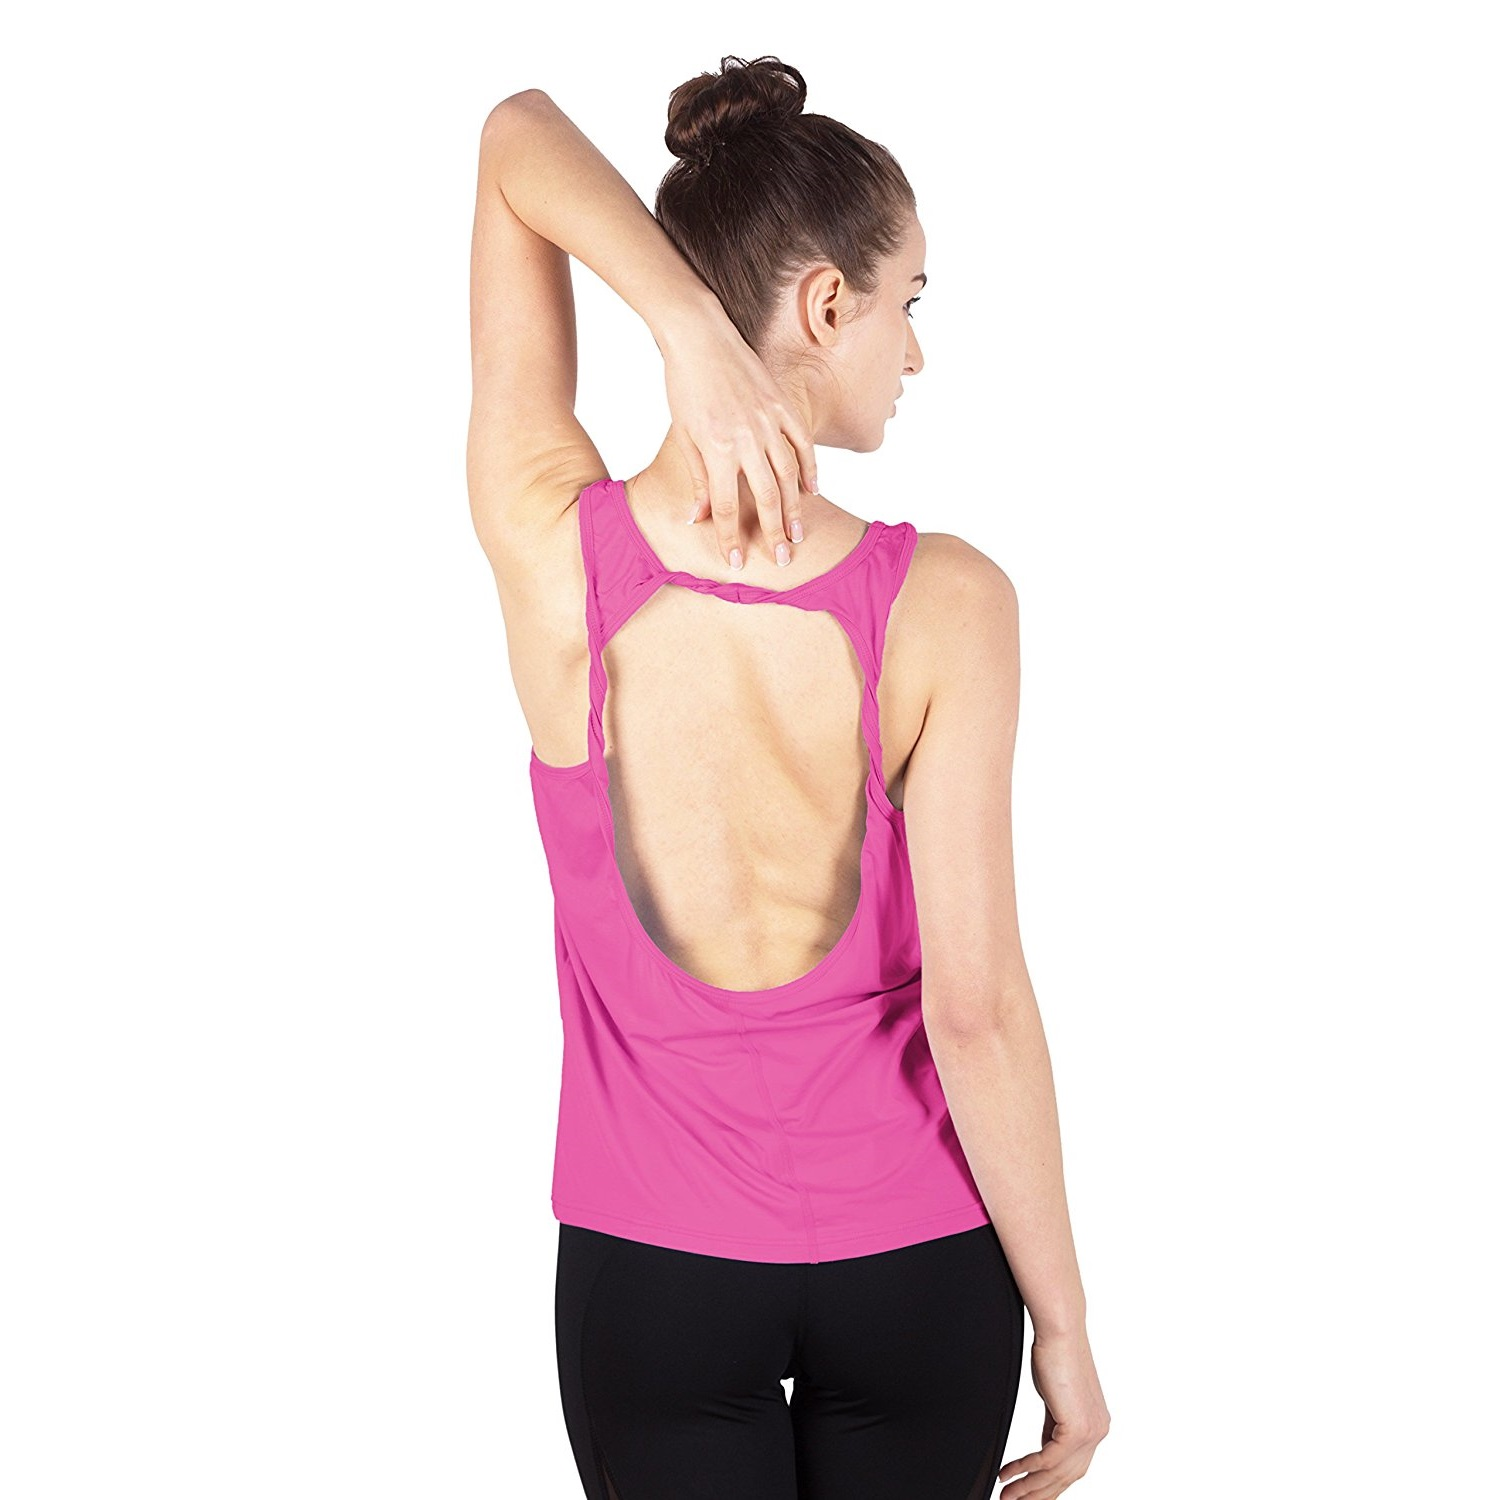 queenie ke womens rose red cowl back yoga shirt